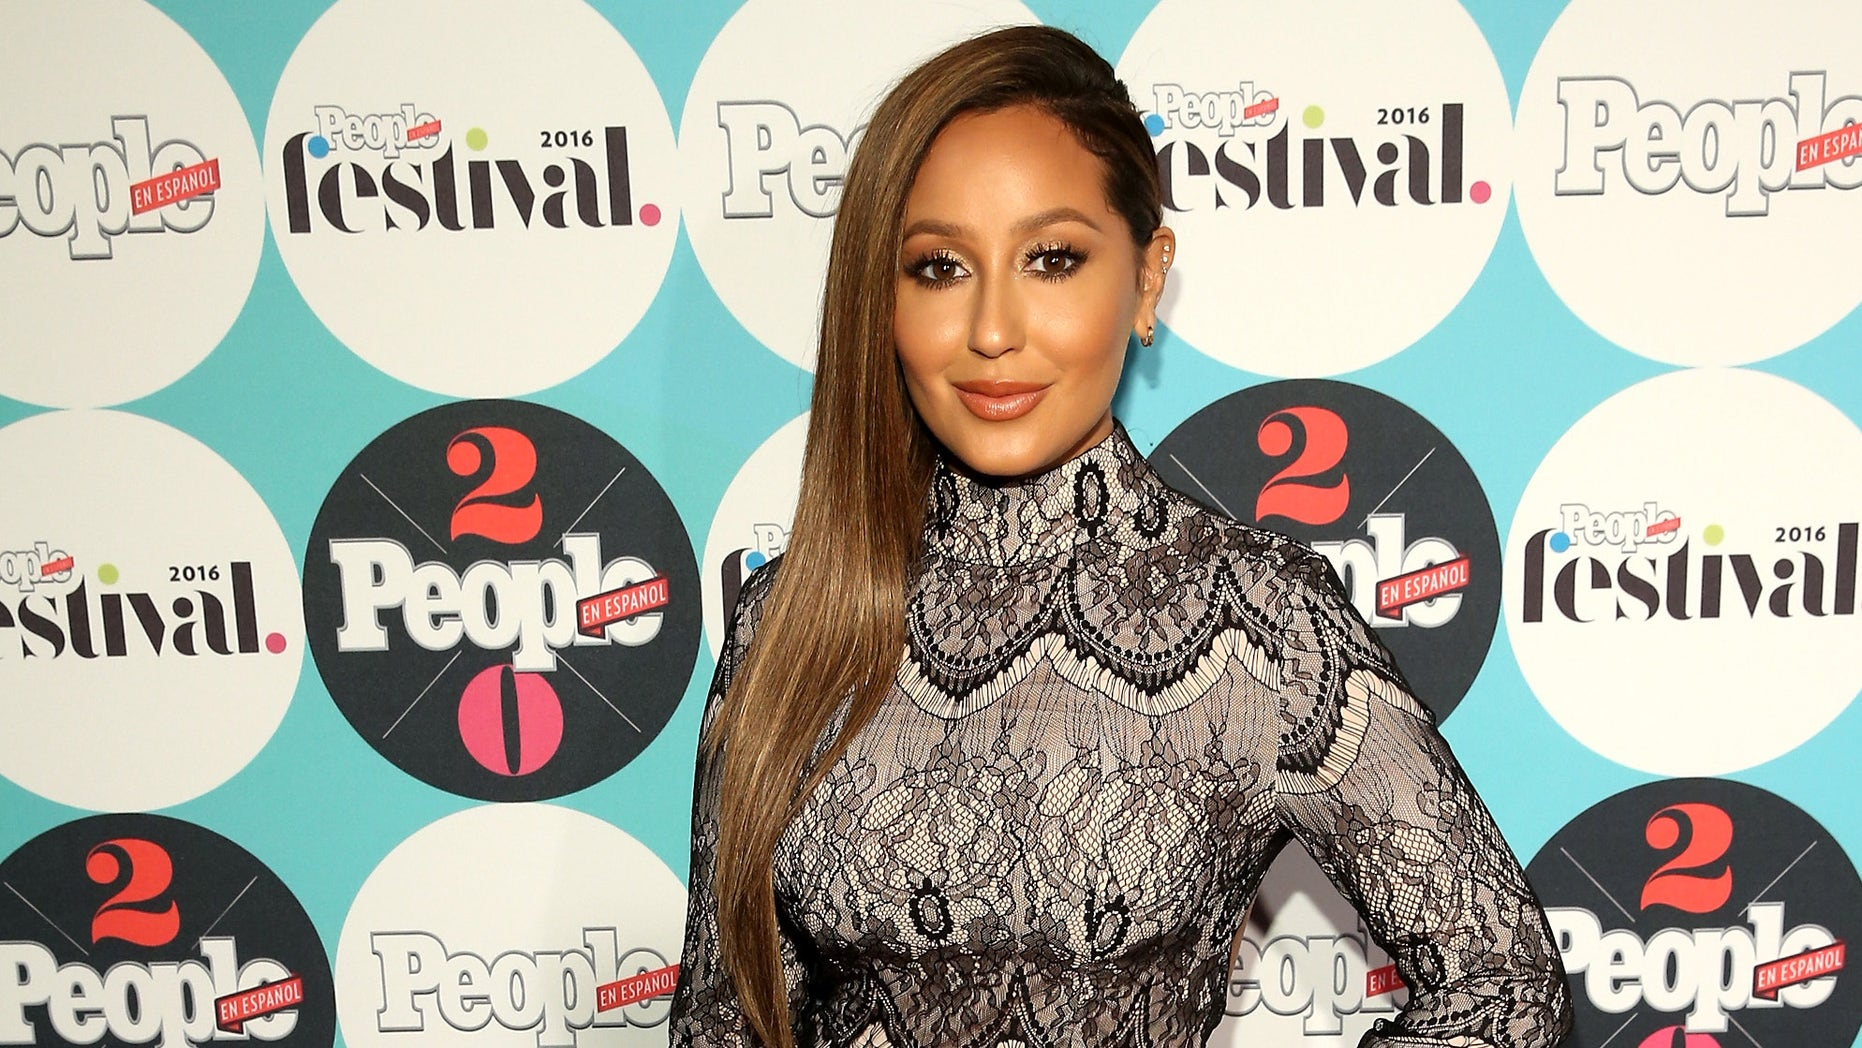 NEW YORK, NY - OCTOBER 16:  Adrienne Bailon attends the 5th Annual Festival PEOPLE En Espanol, Day 2 at the Jacob Javitz Center on October 16, 2016 in New York City.  (Photo by Rob Kim/Getty Images for PEOPLE En Espanol )